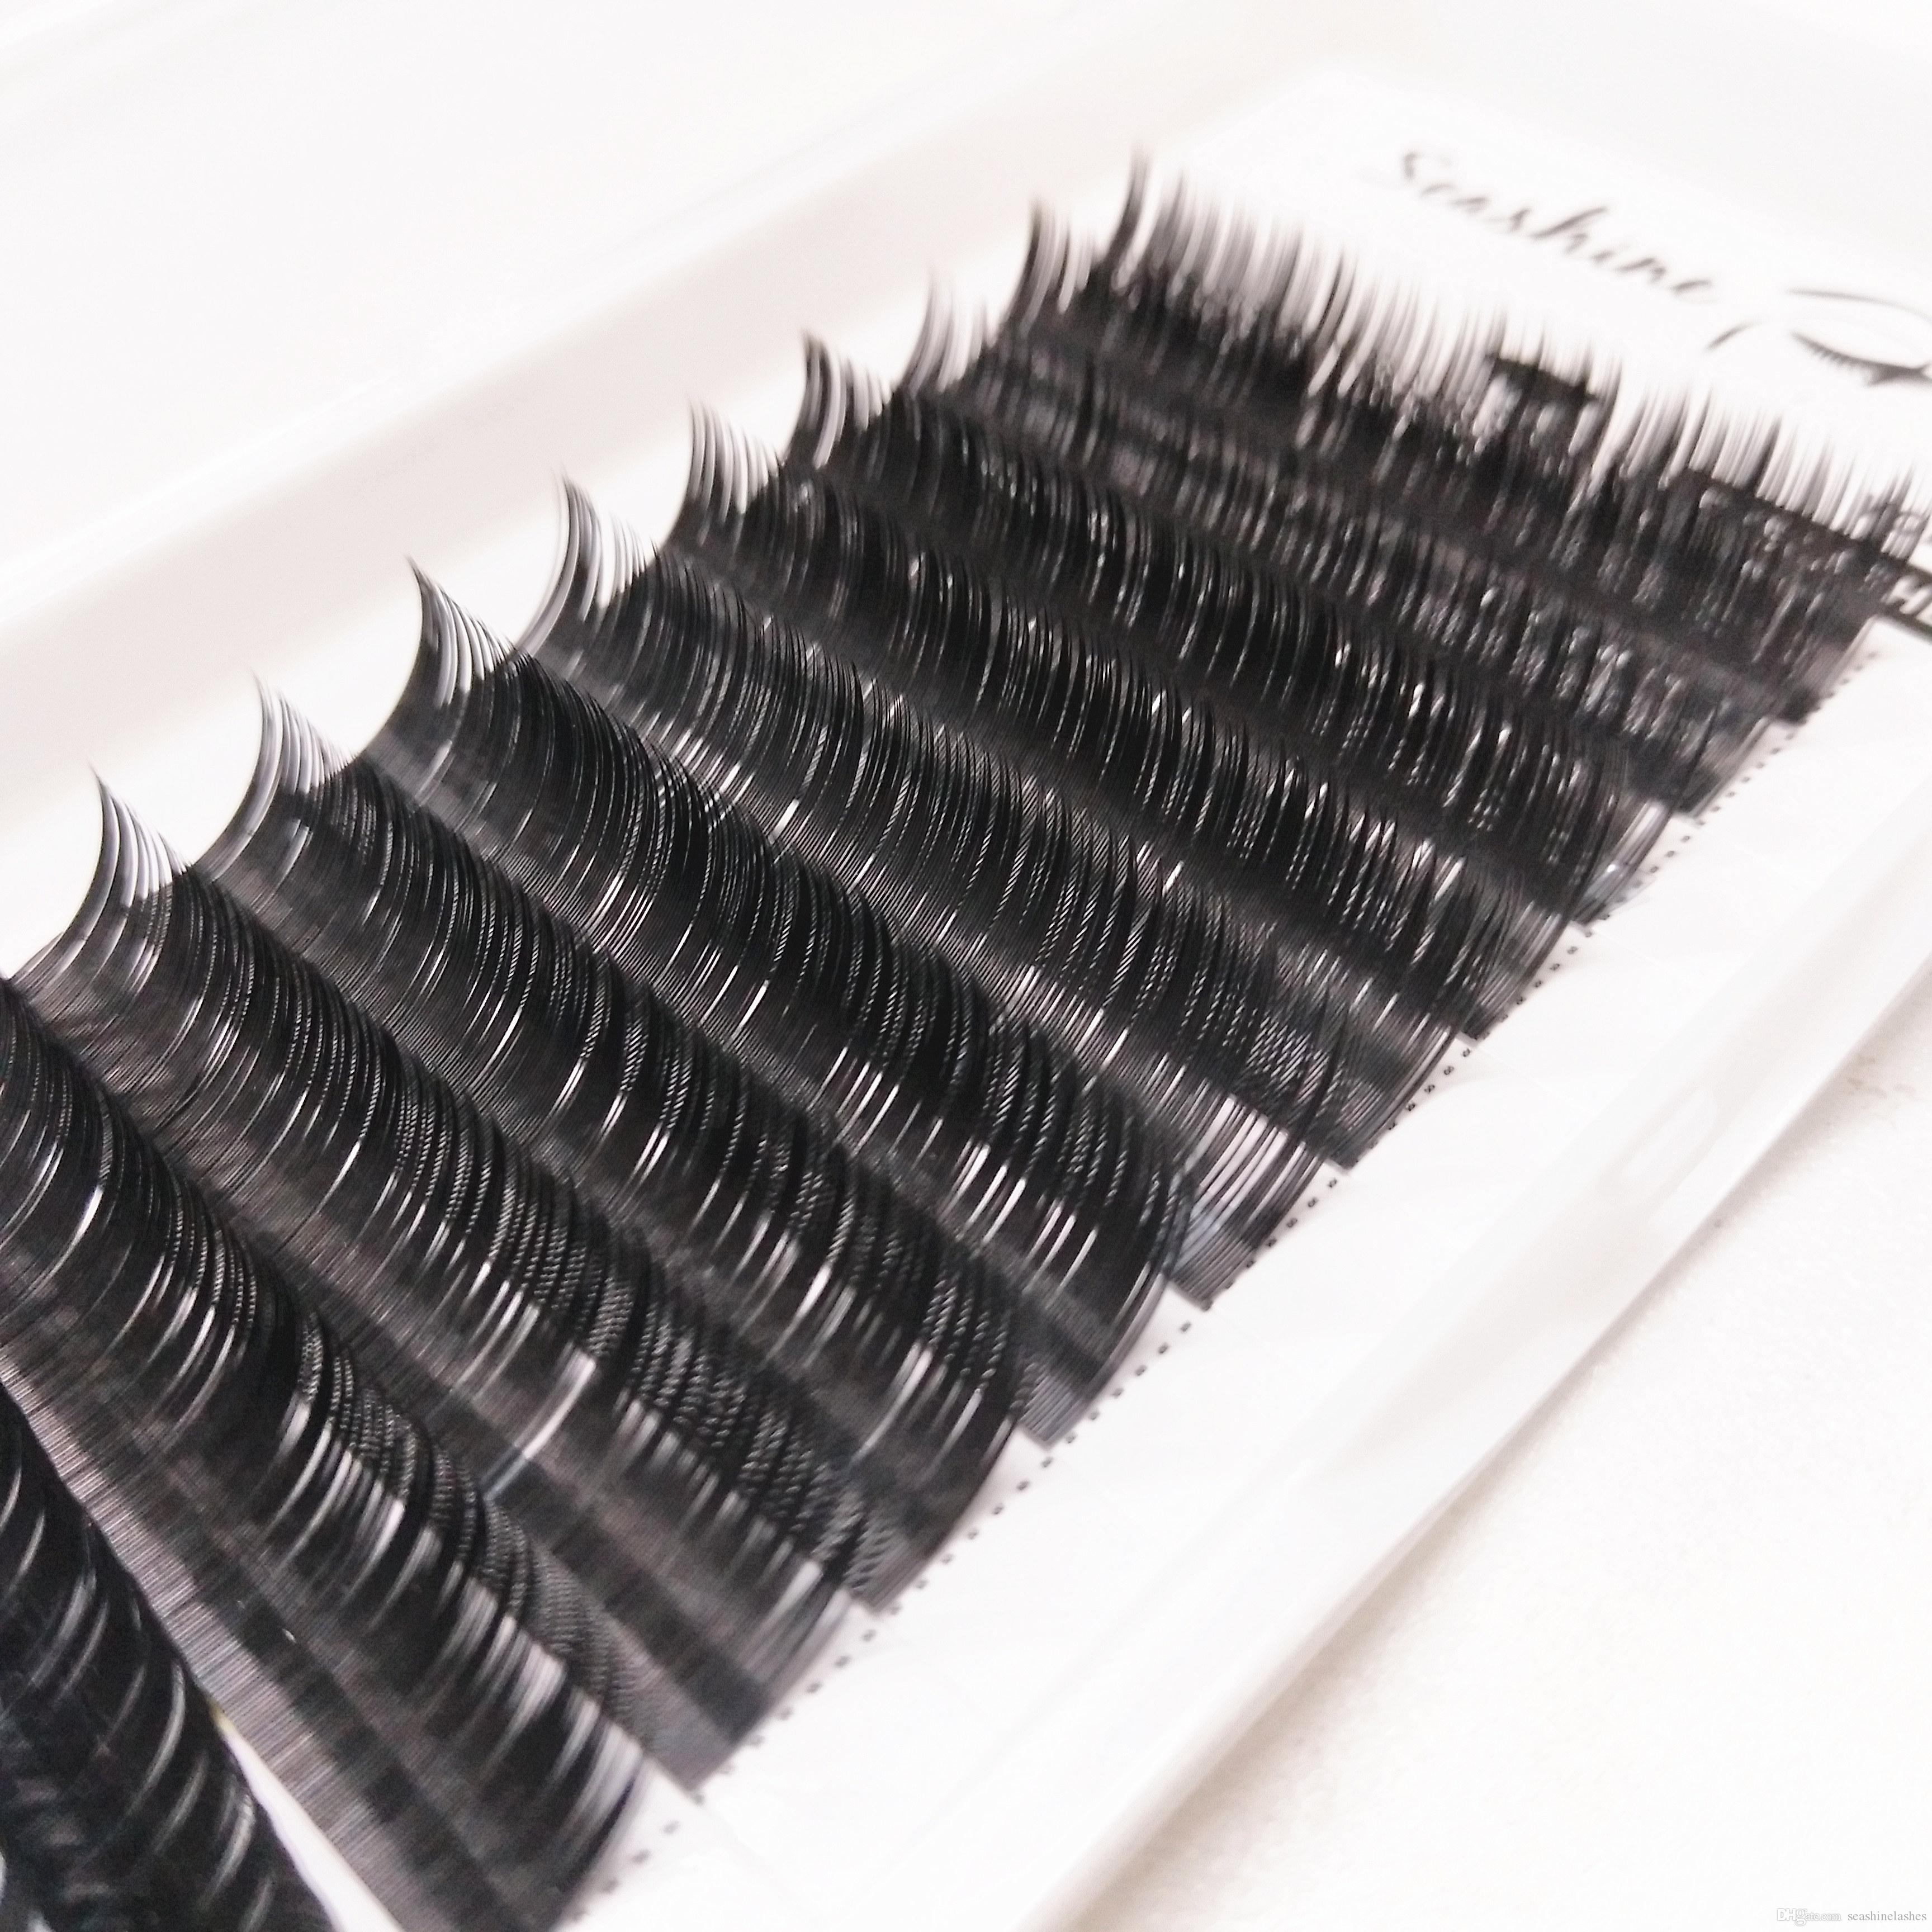 6ab79d5fea1 Seashine Logo Individual Eyelash Extension 8 18mm Single Length JBCD Curl  0.03 0.25mmT Accept Private Label Eyelashes Grow Back Hollywood Lashes From  ...